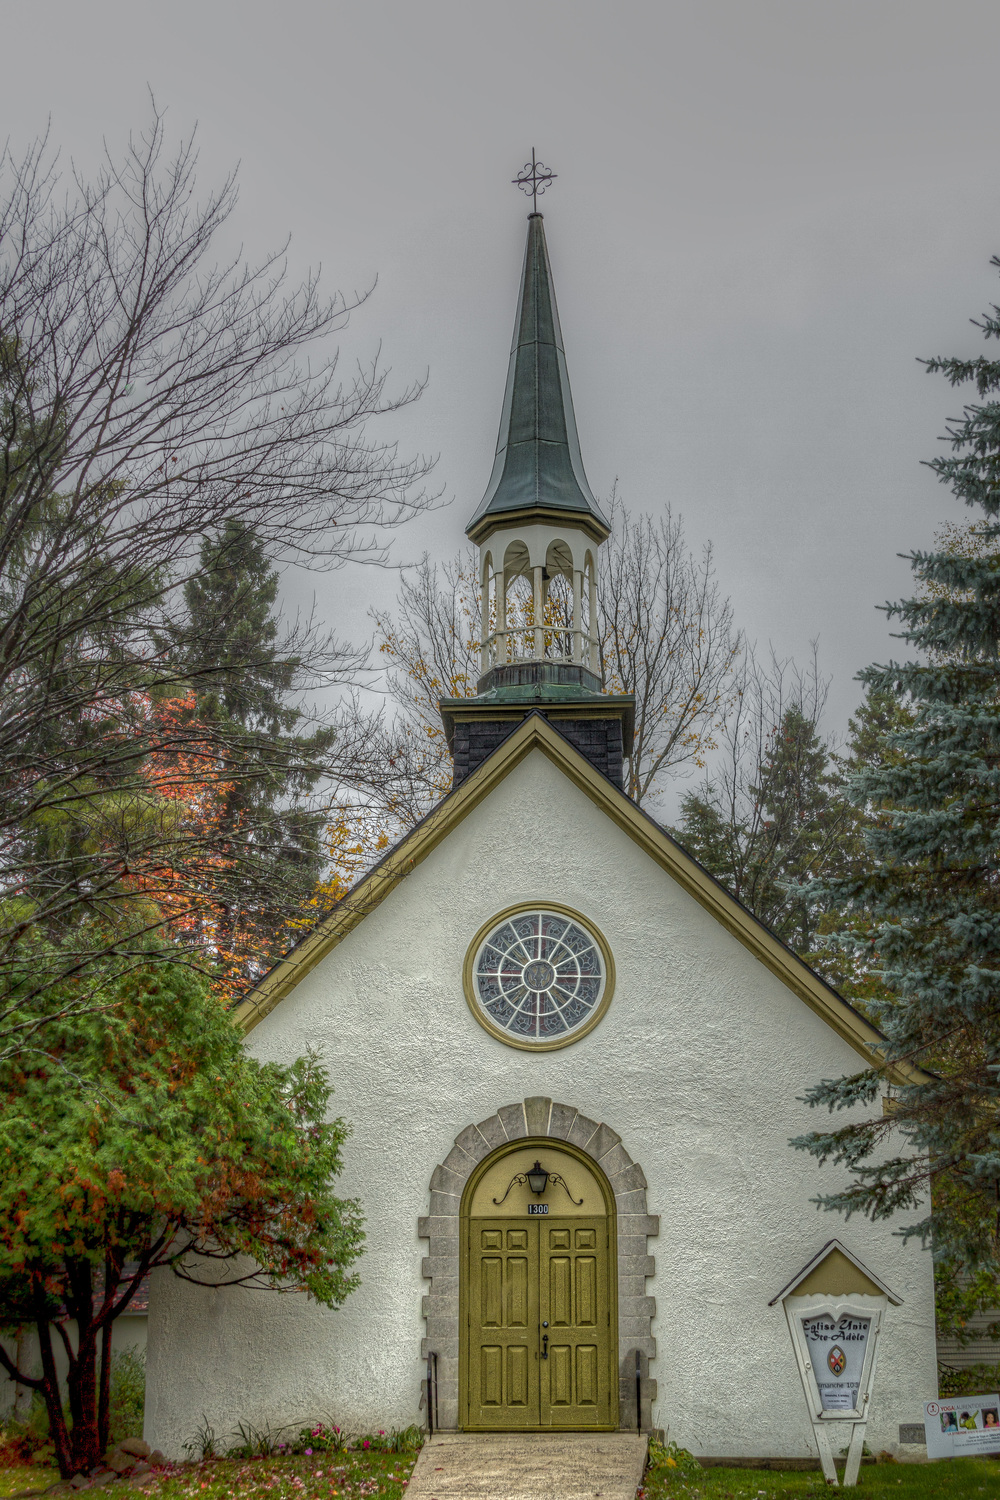 20141004_Sainte Adele - Fall Colors_IMG_6265_tonemapped-M.jpg